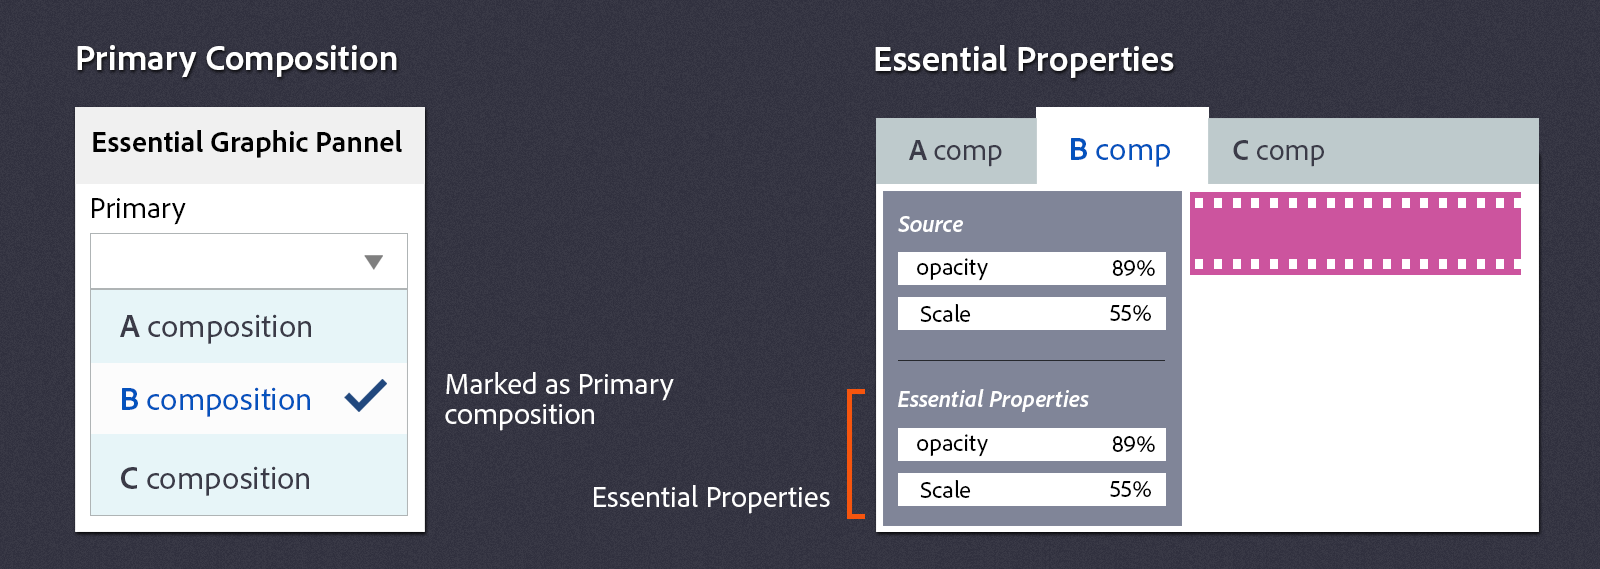 Essential Properties and Primary Composition